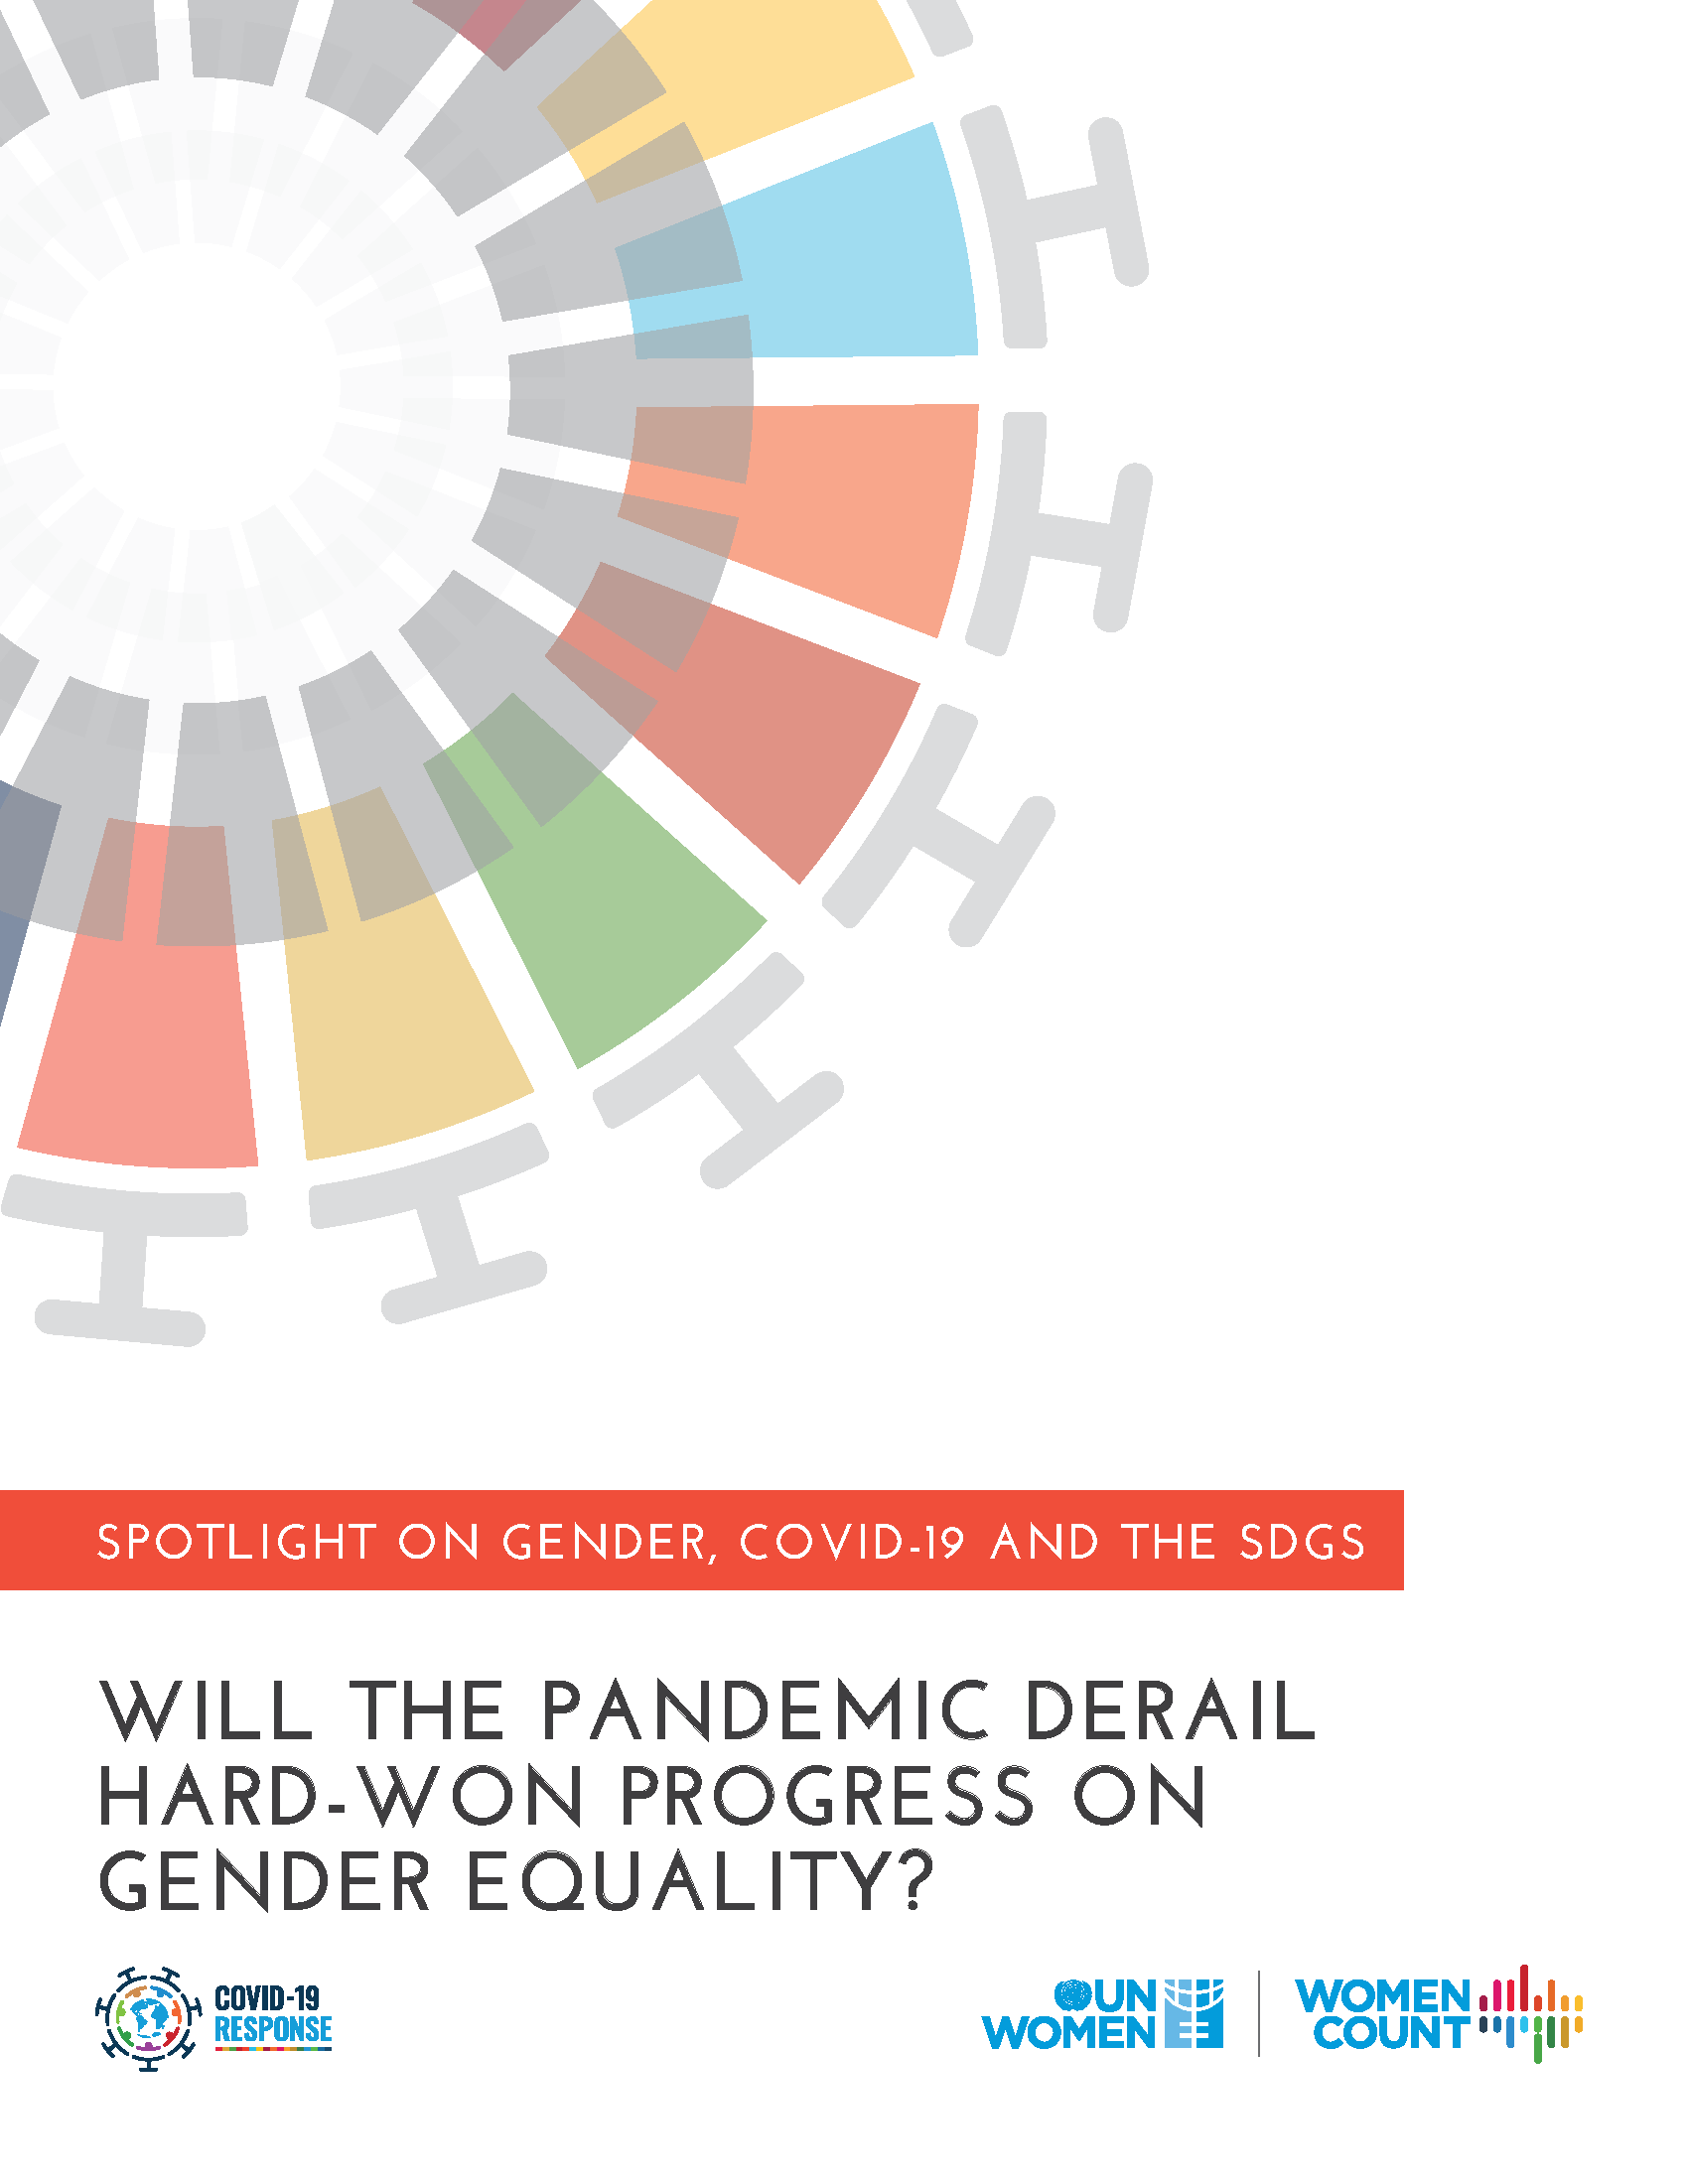 Spotlight on gender, COVID-19 and SDGs